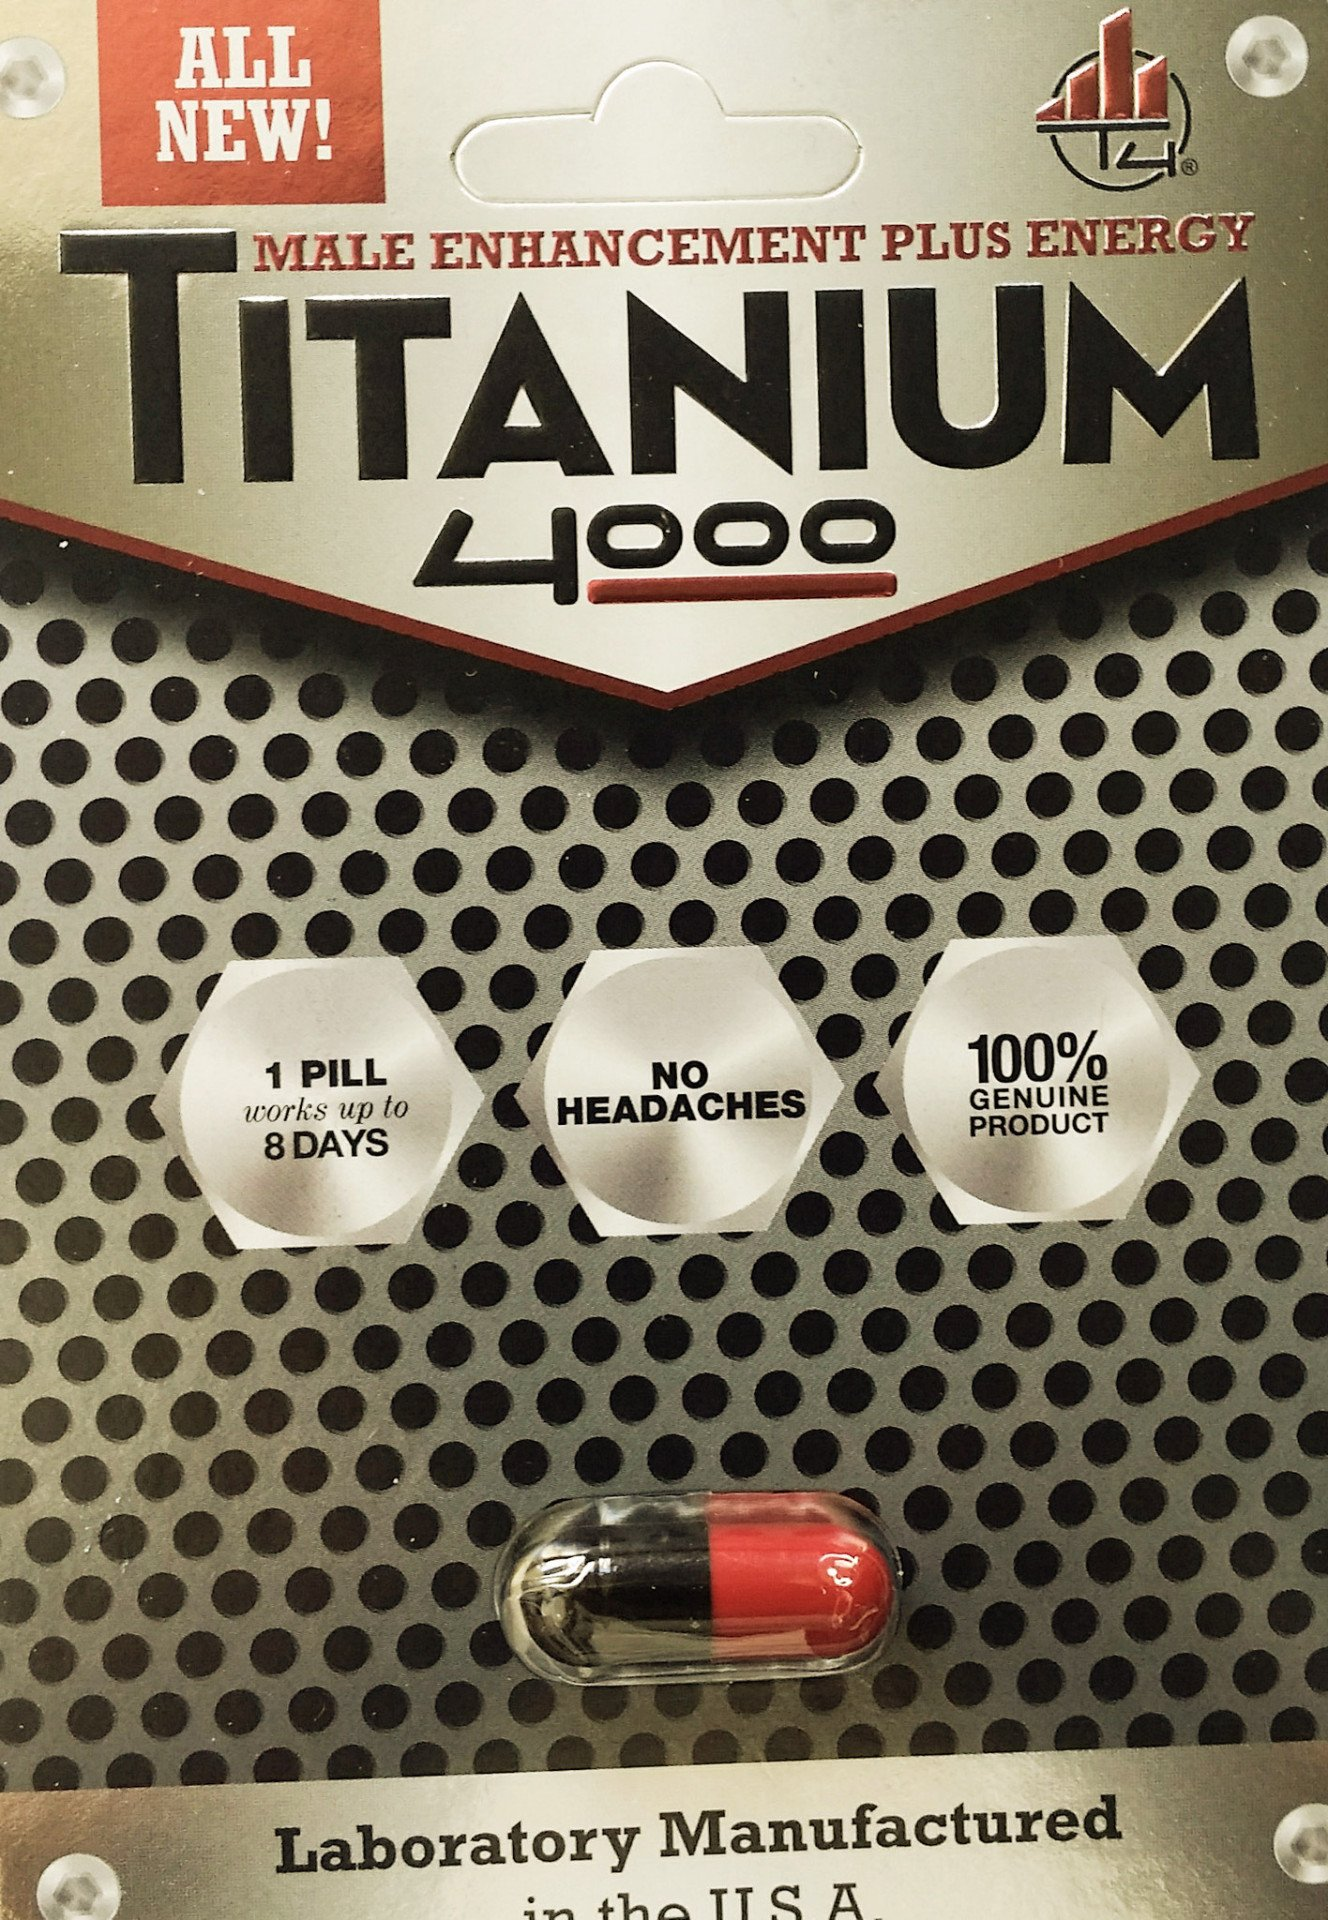 Titanium 4000 Male Enhancement Plus Energy Pill100% Genuine No Headache